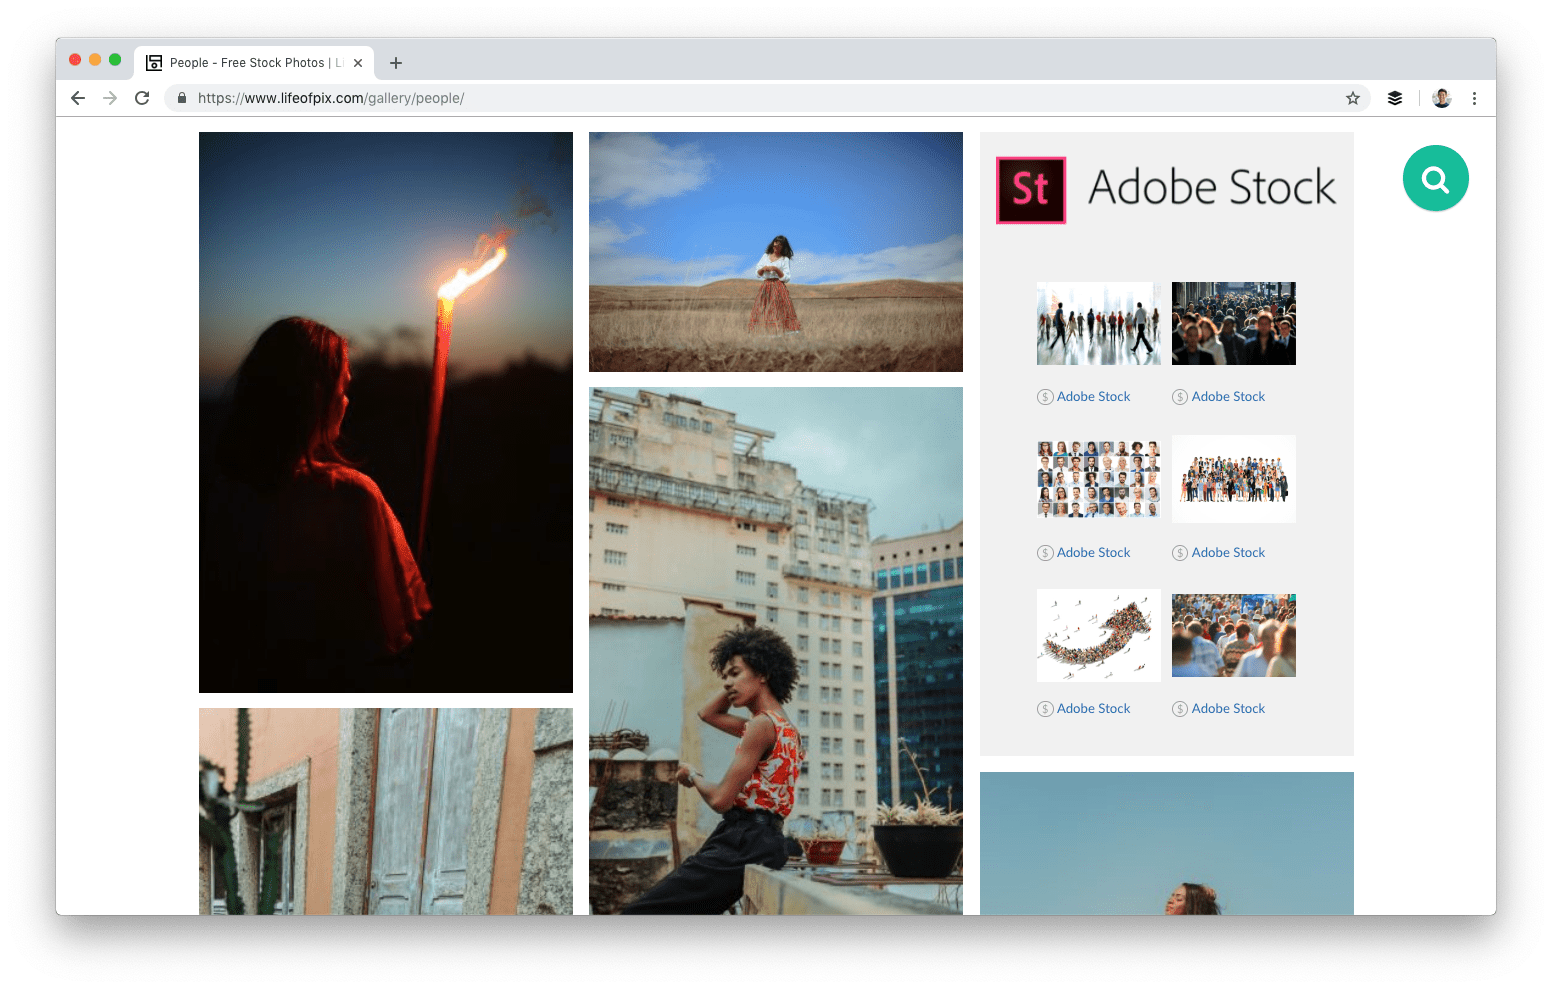 websites to get free stock images